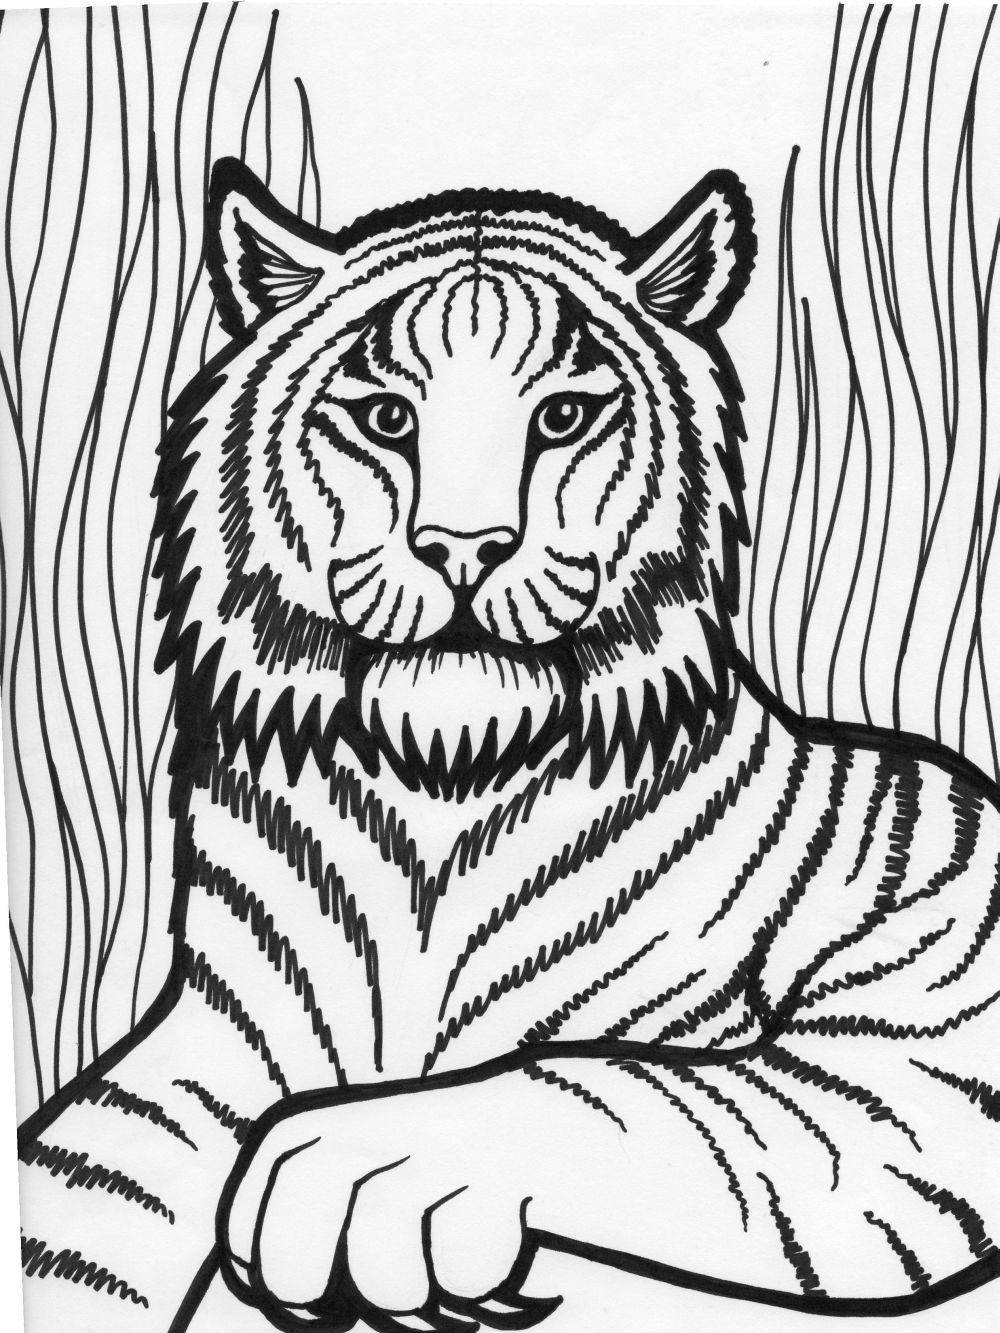 coloring picture of tiger tiger print drawing at getdrawings free download picture coloring tiger of